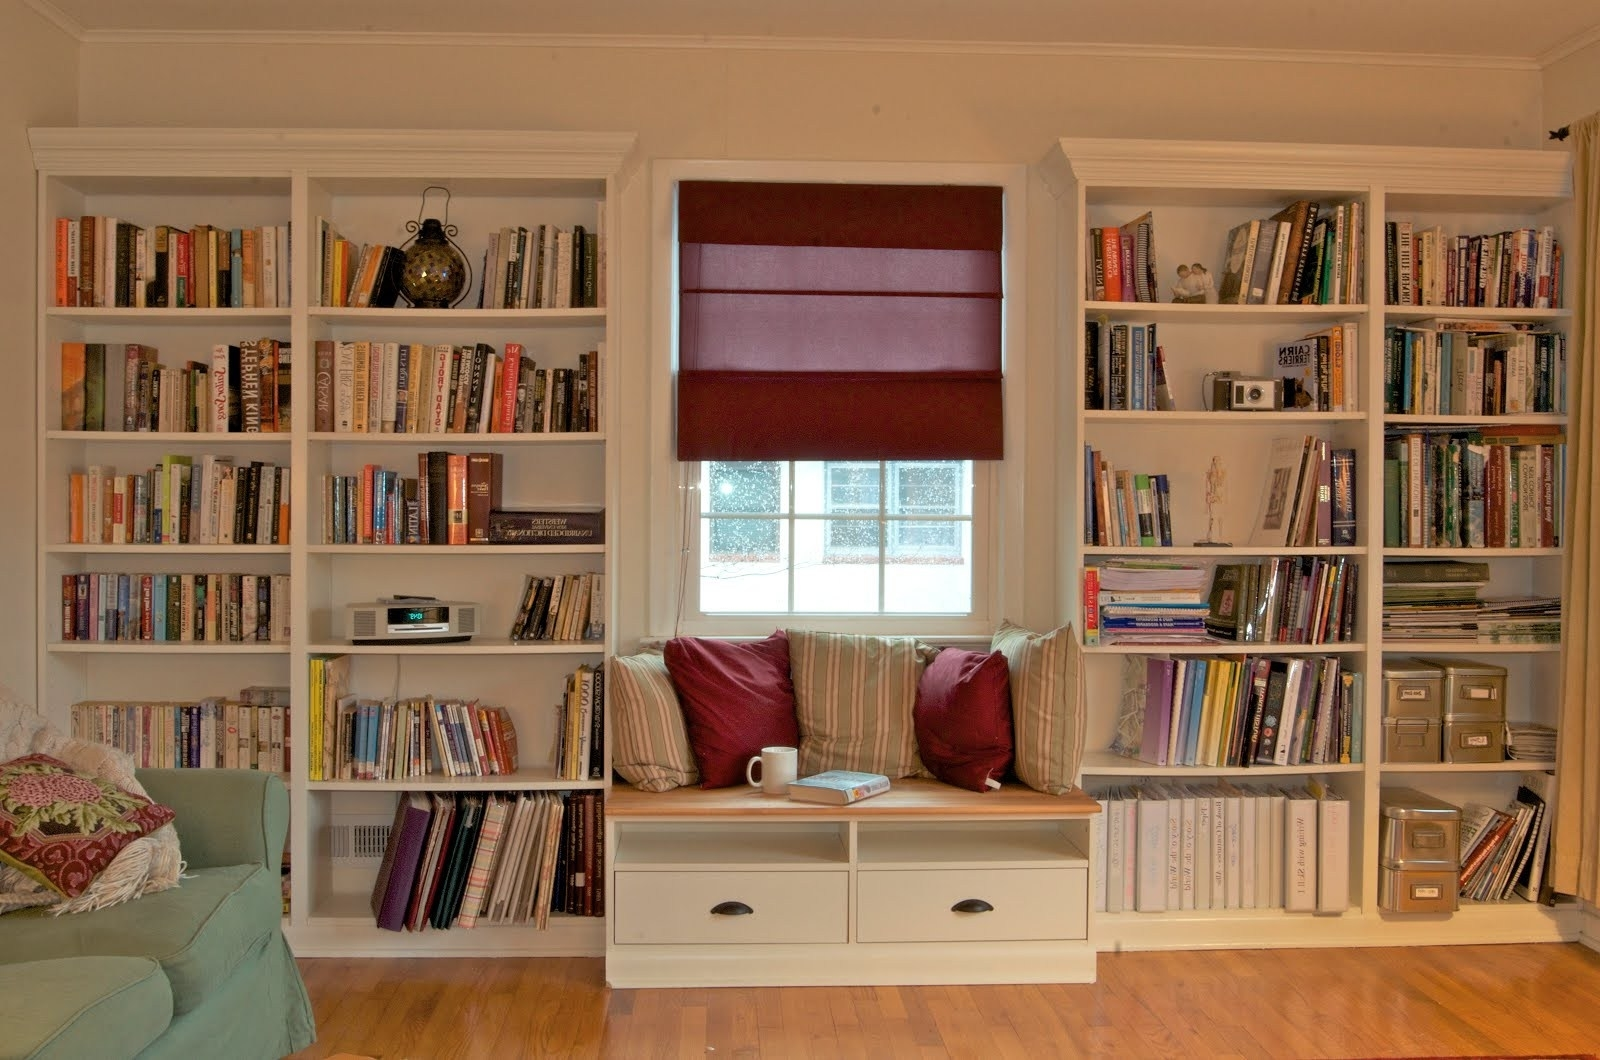 2018 Bench Bookcases Pertaining To Built In Bookshelves With Window Seat For Under $350 – Ikea Hackers (View 1 of 15)